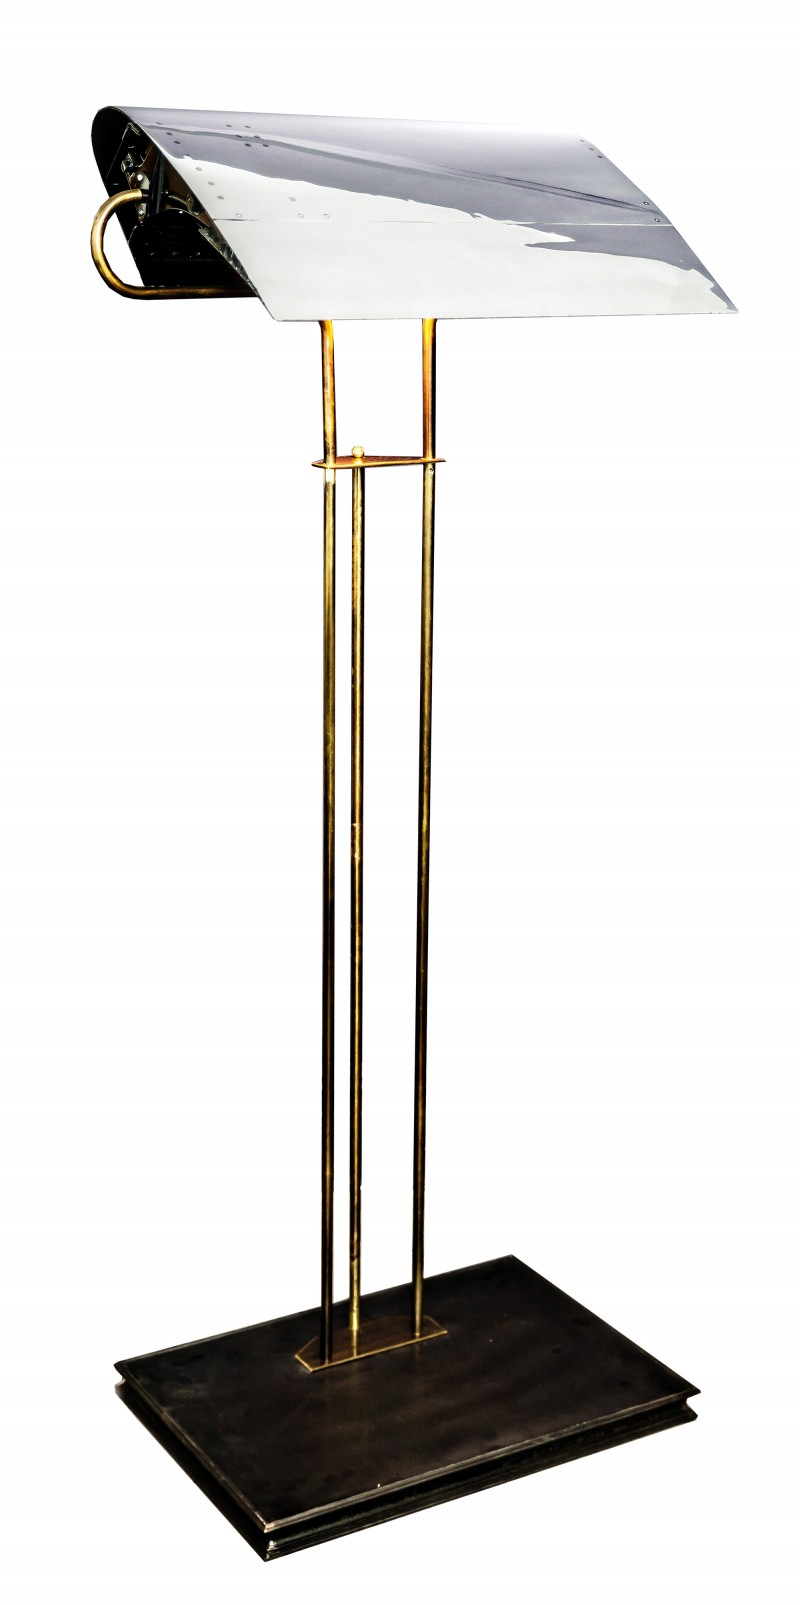 a320-floor-lamp-overview-800x1605.jpg